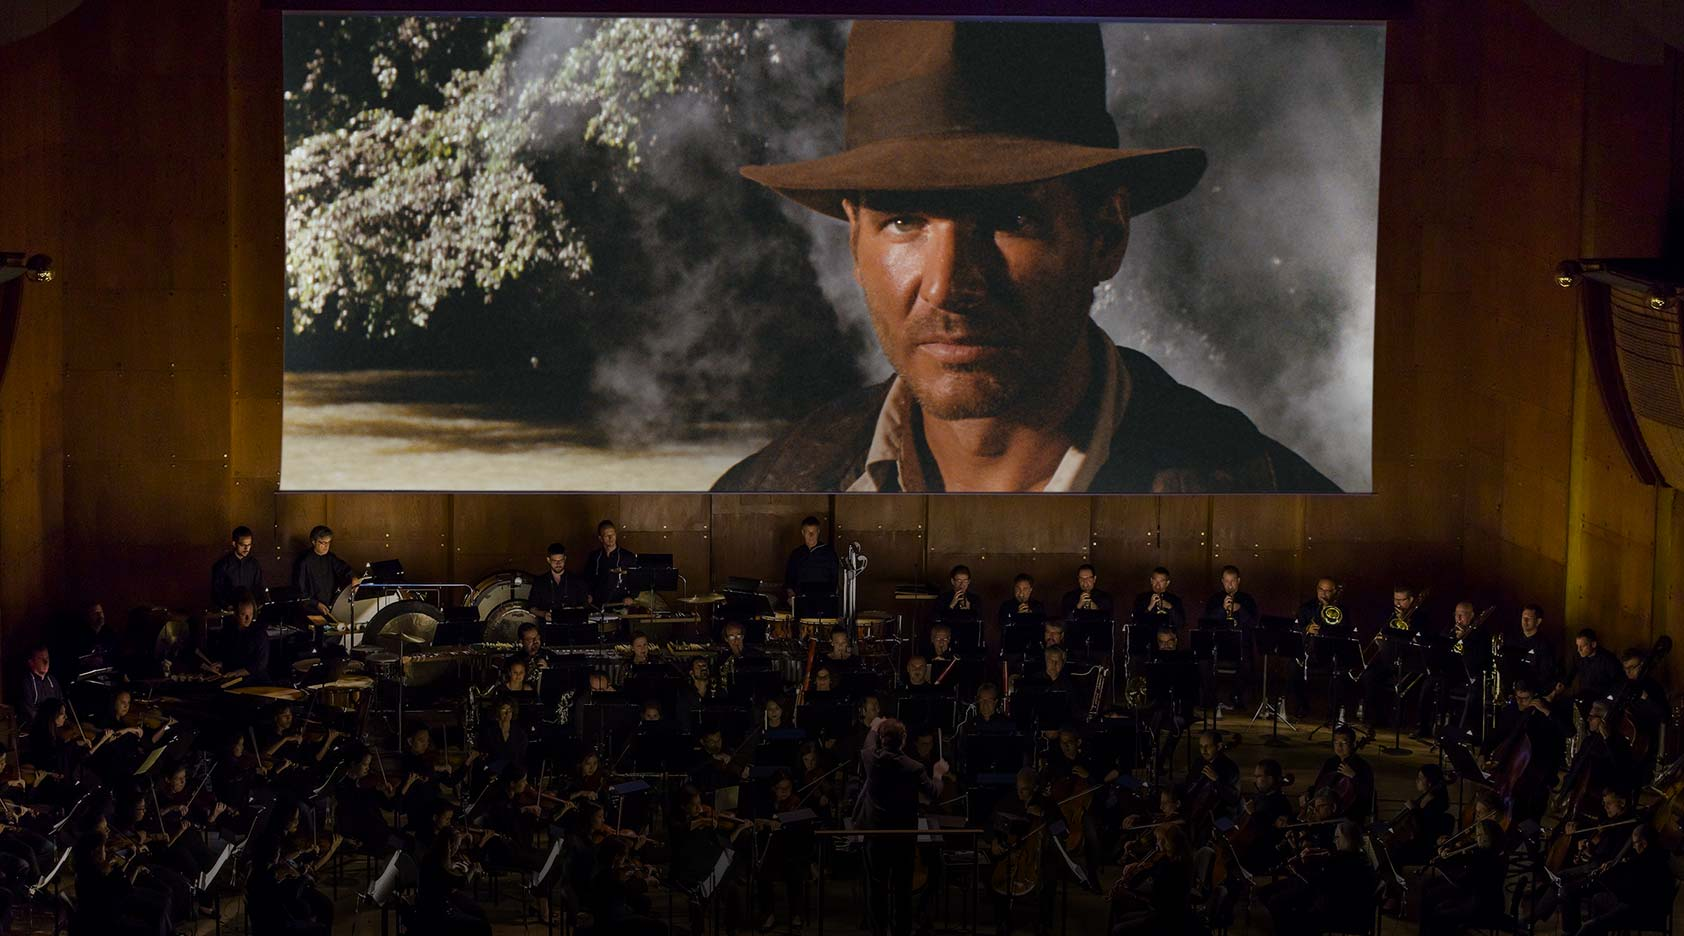 CANCELLED: <em>Raiders of the Lost Ark</em> in Concert